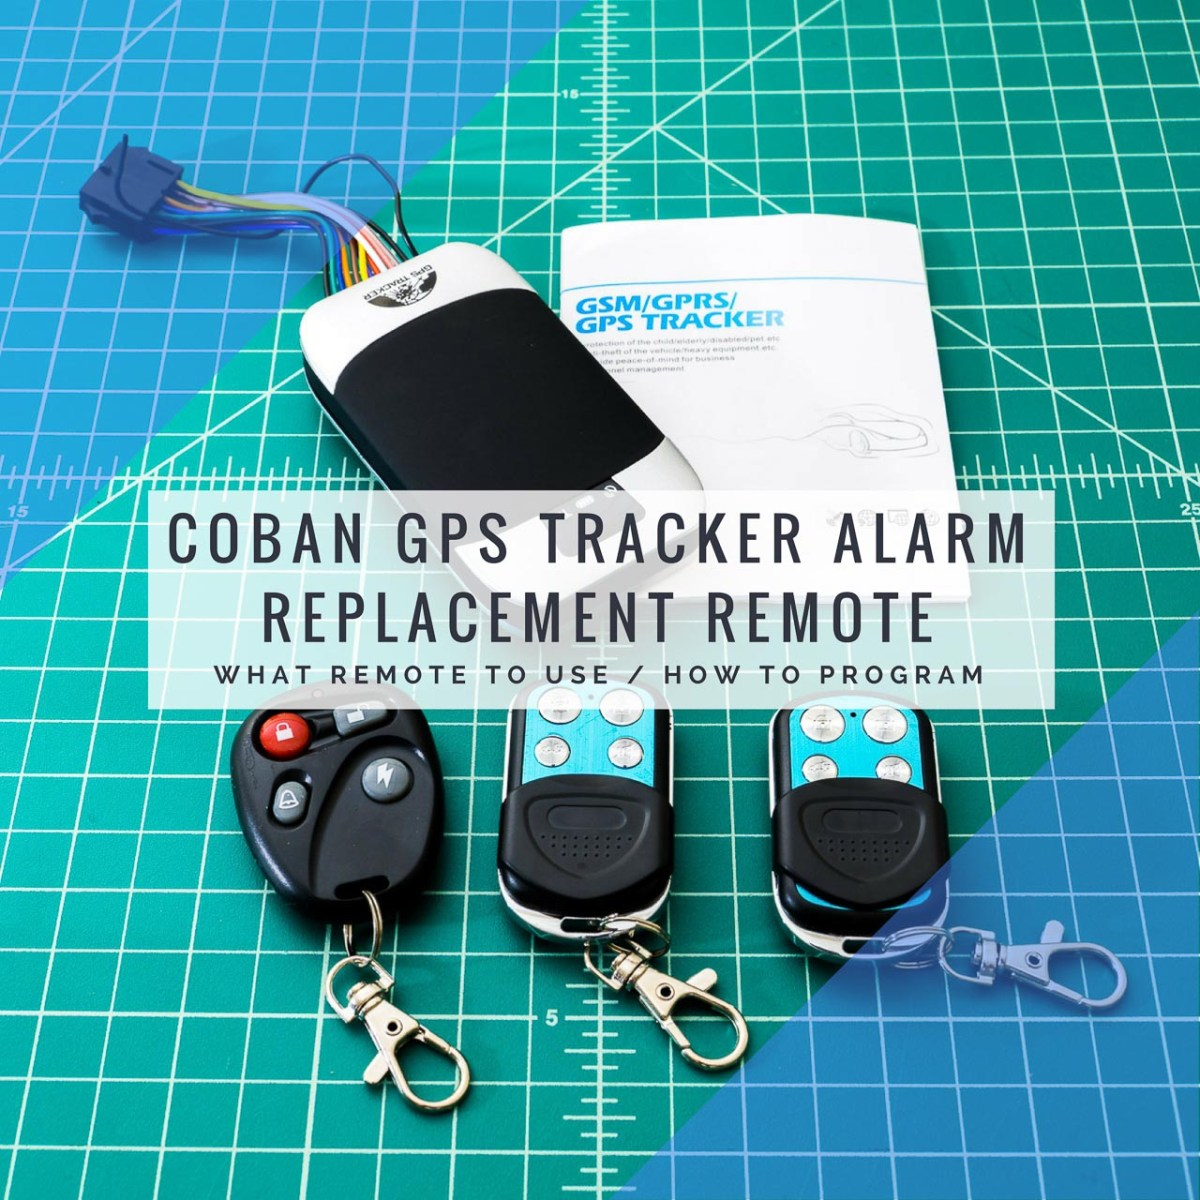 Coban GPS Tracker Alarm Remote Replacement